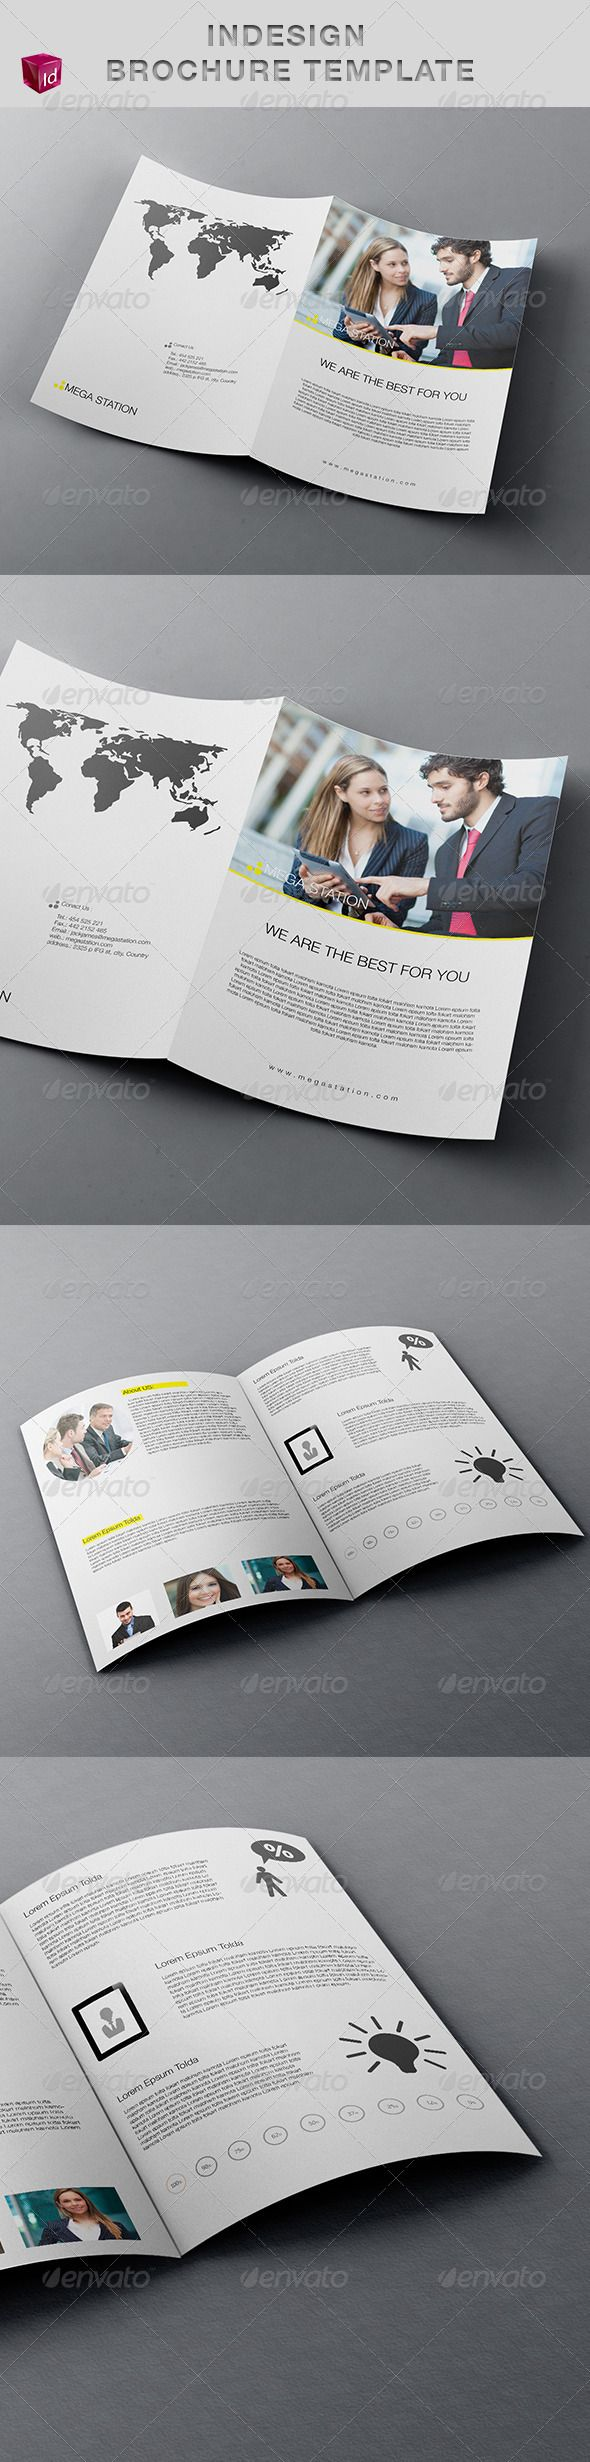 Top 25 ideas about print templates on pinterest fonts for Bi fold brochure template indesign free